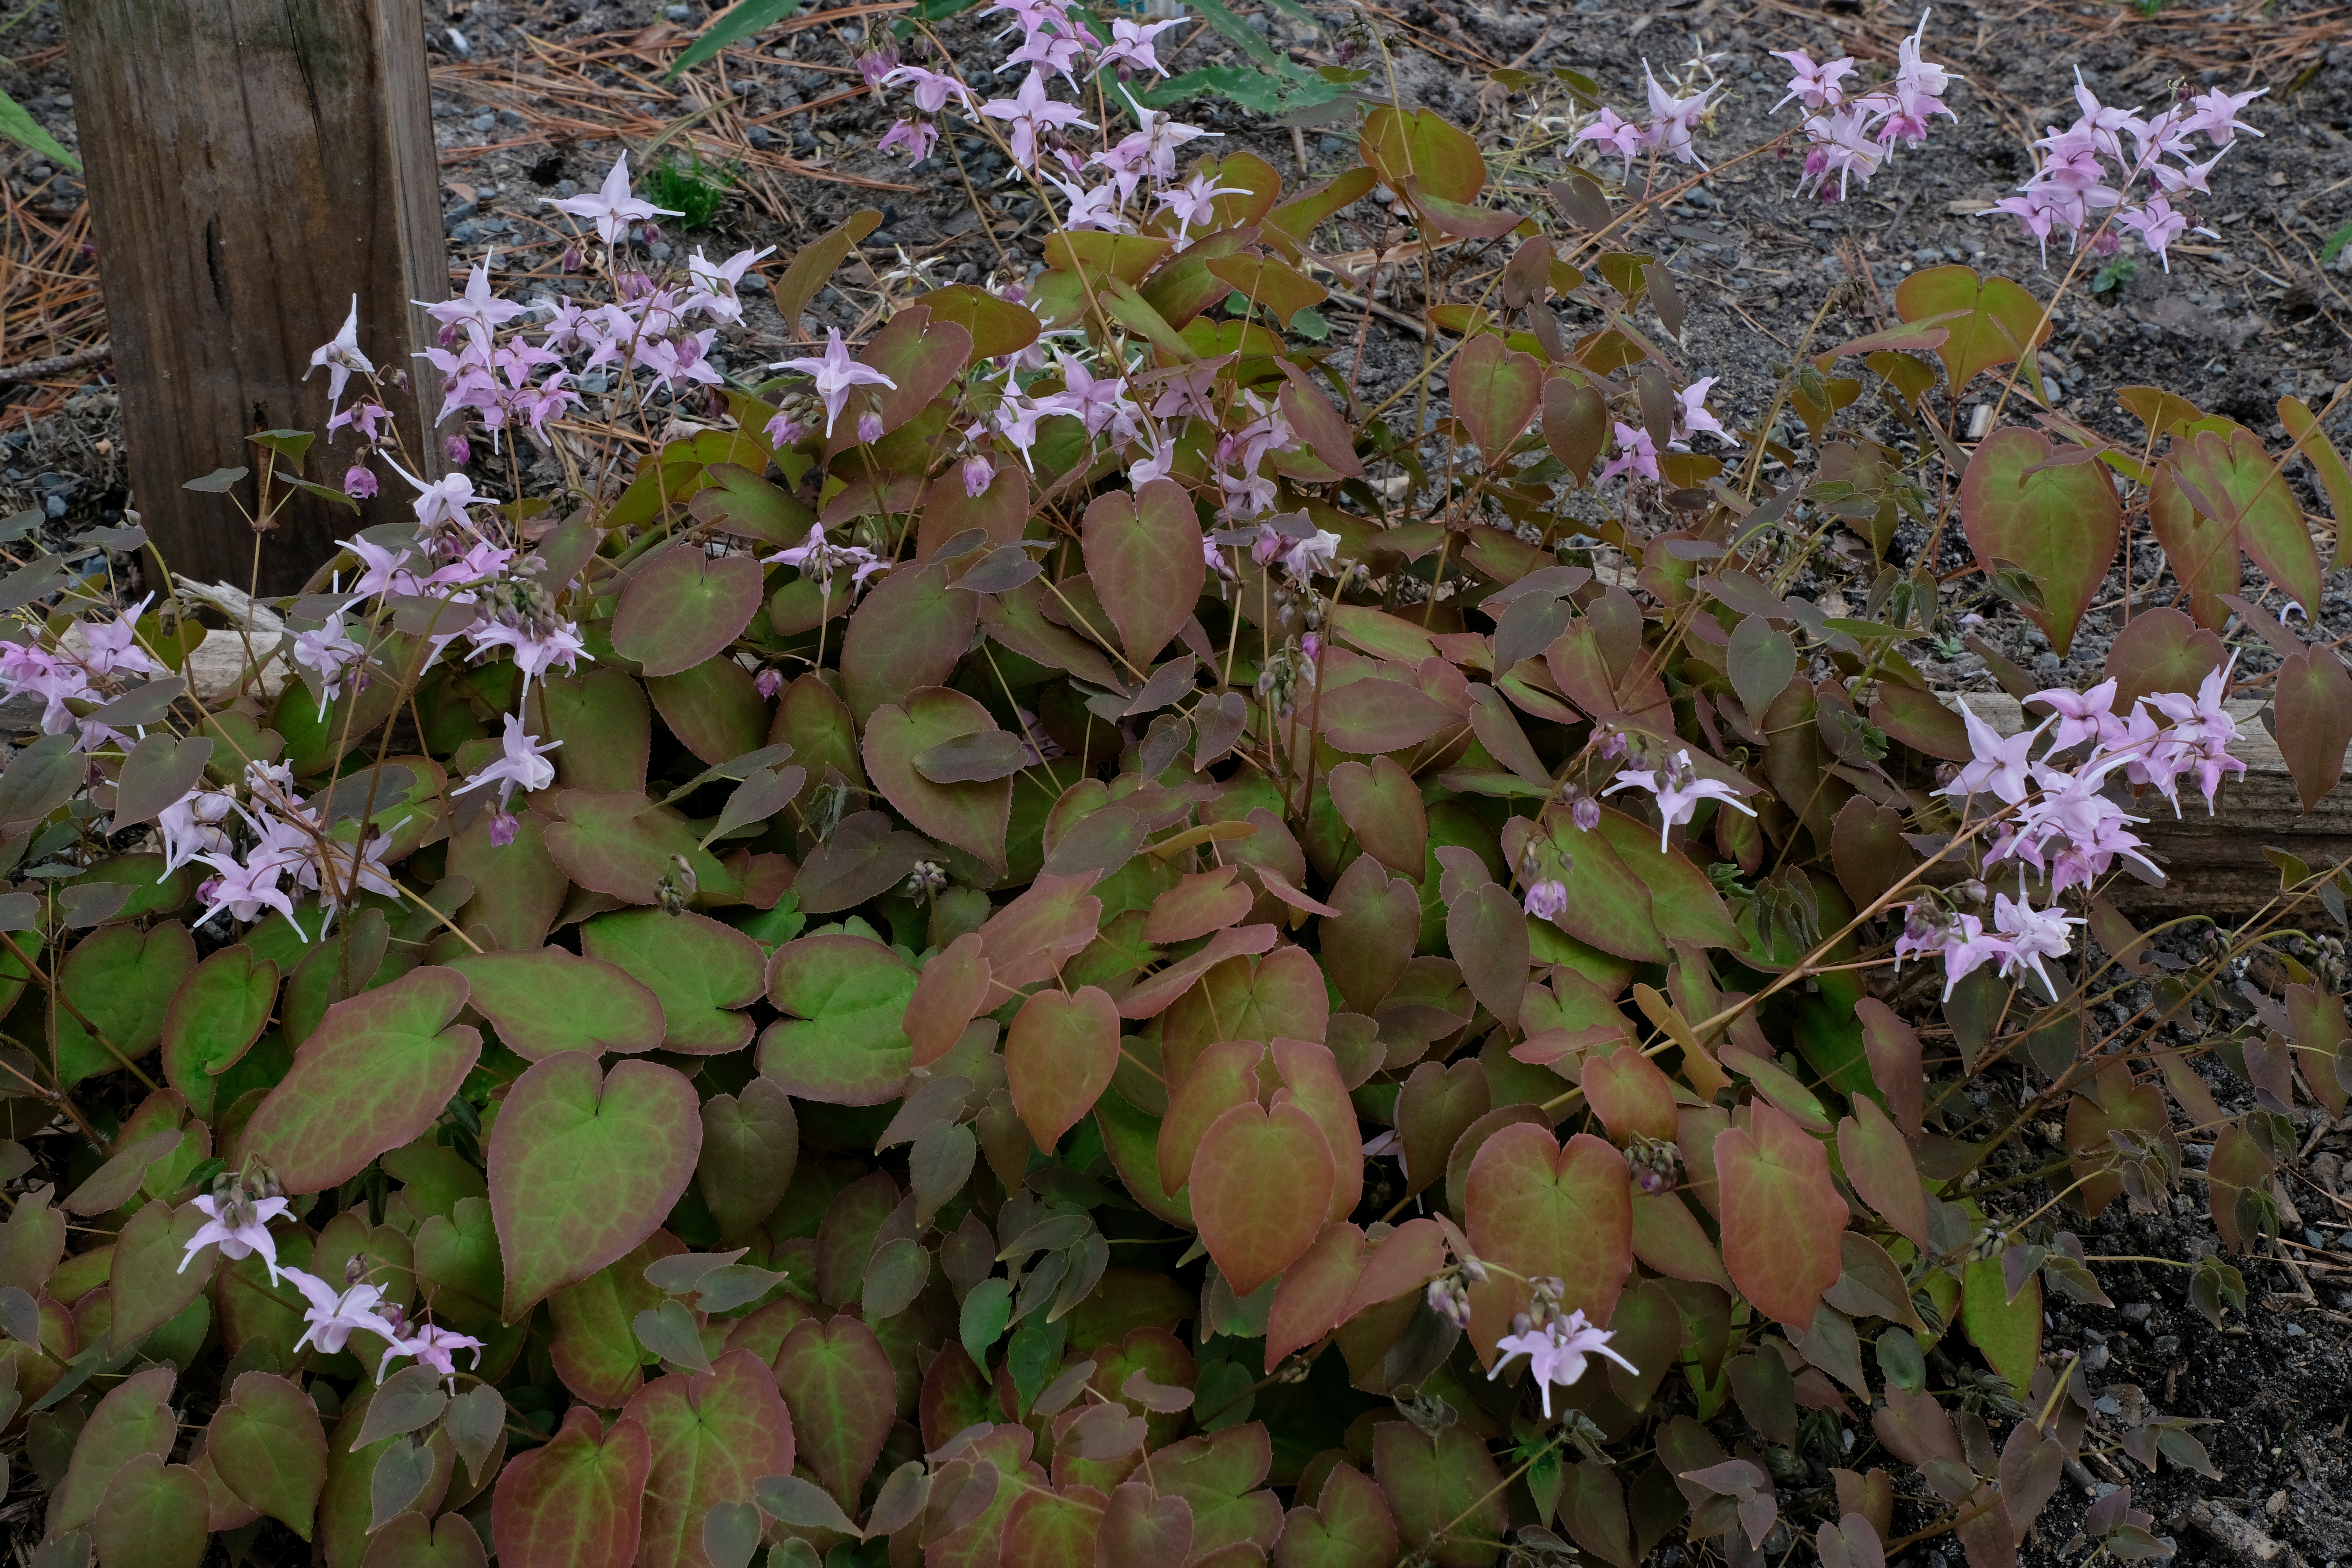 Epimedium x youngianum 'Royal Flush' @ JLBG - a 2004 Cobblewood Nursery introduction; semi-evergreen